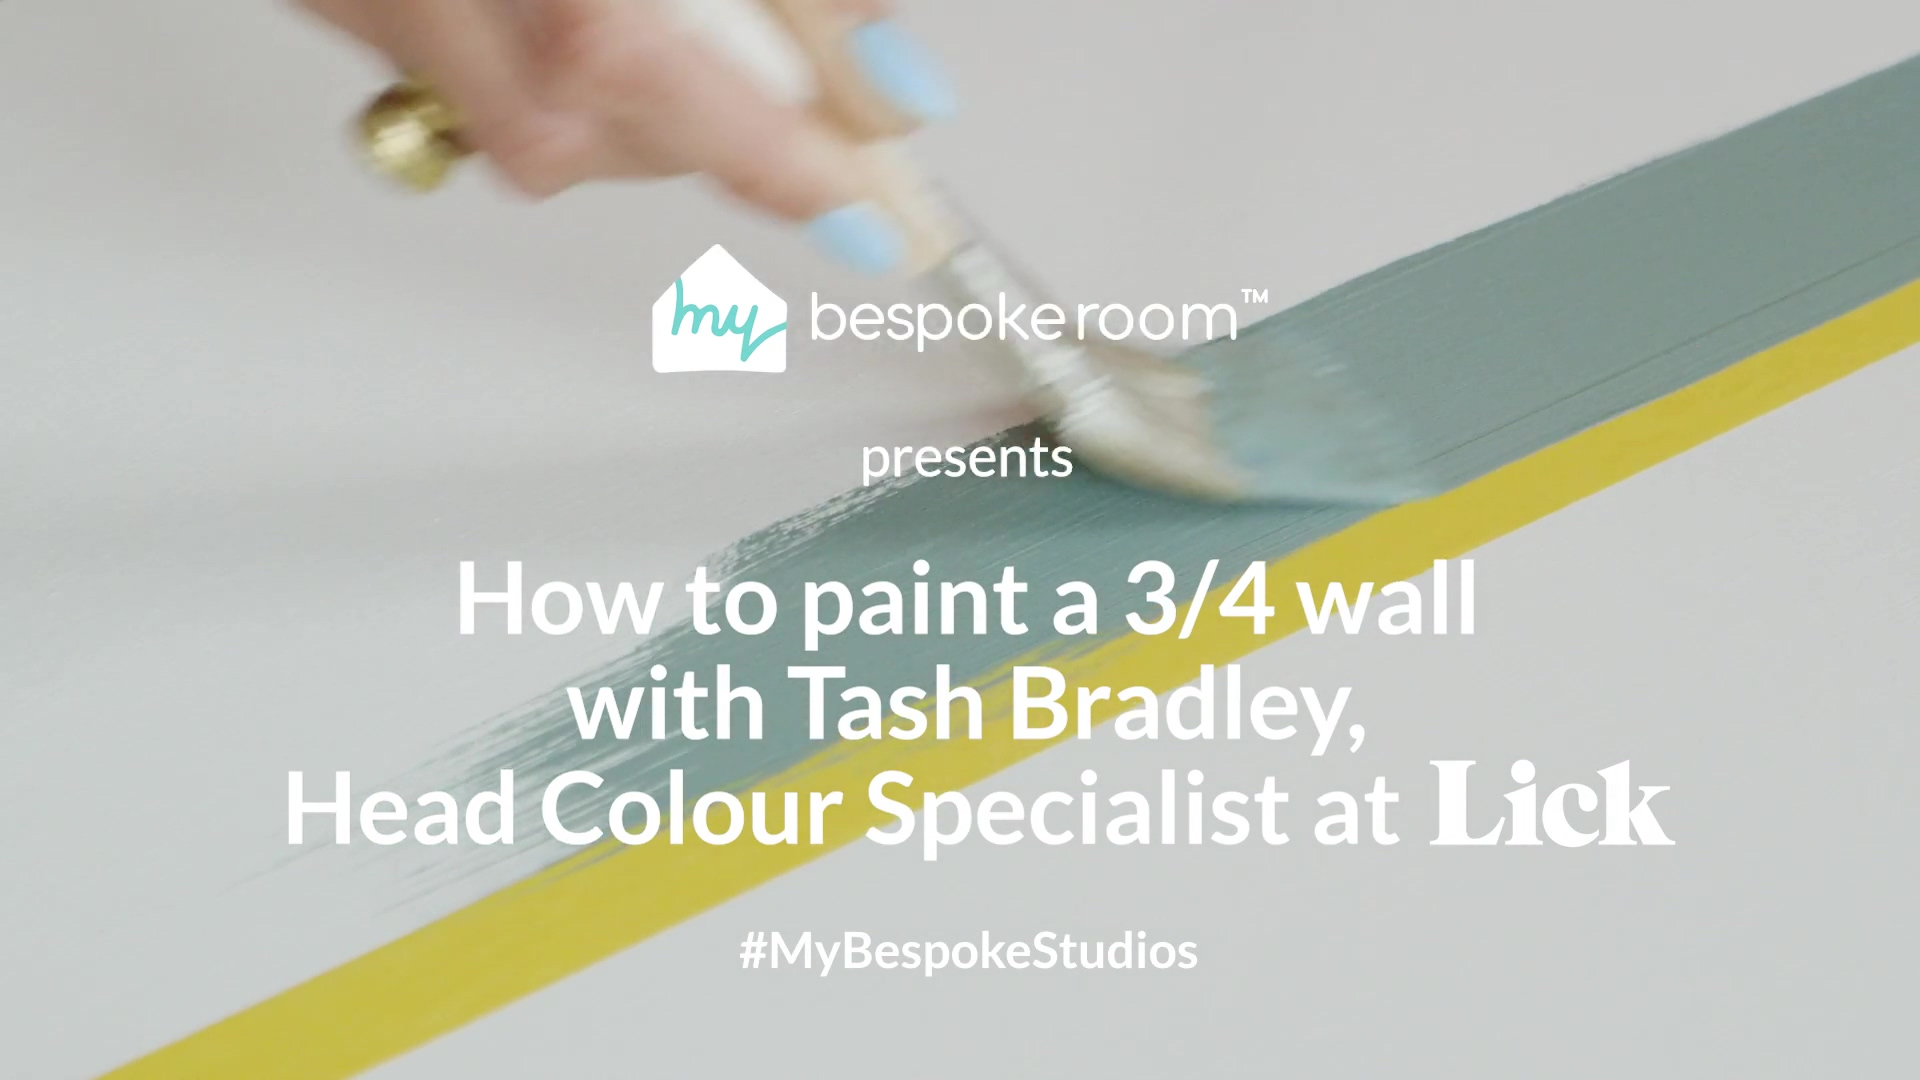 Mbr Lick How To Paint 3-4 Wall V07-1 compressed